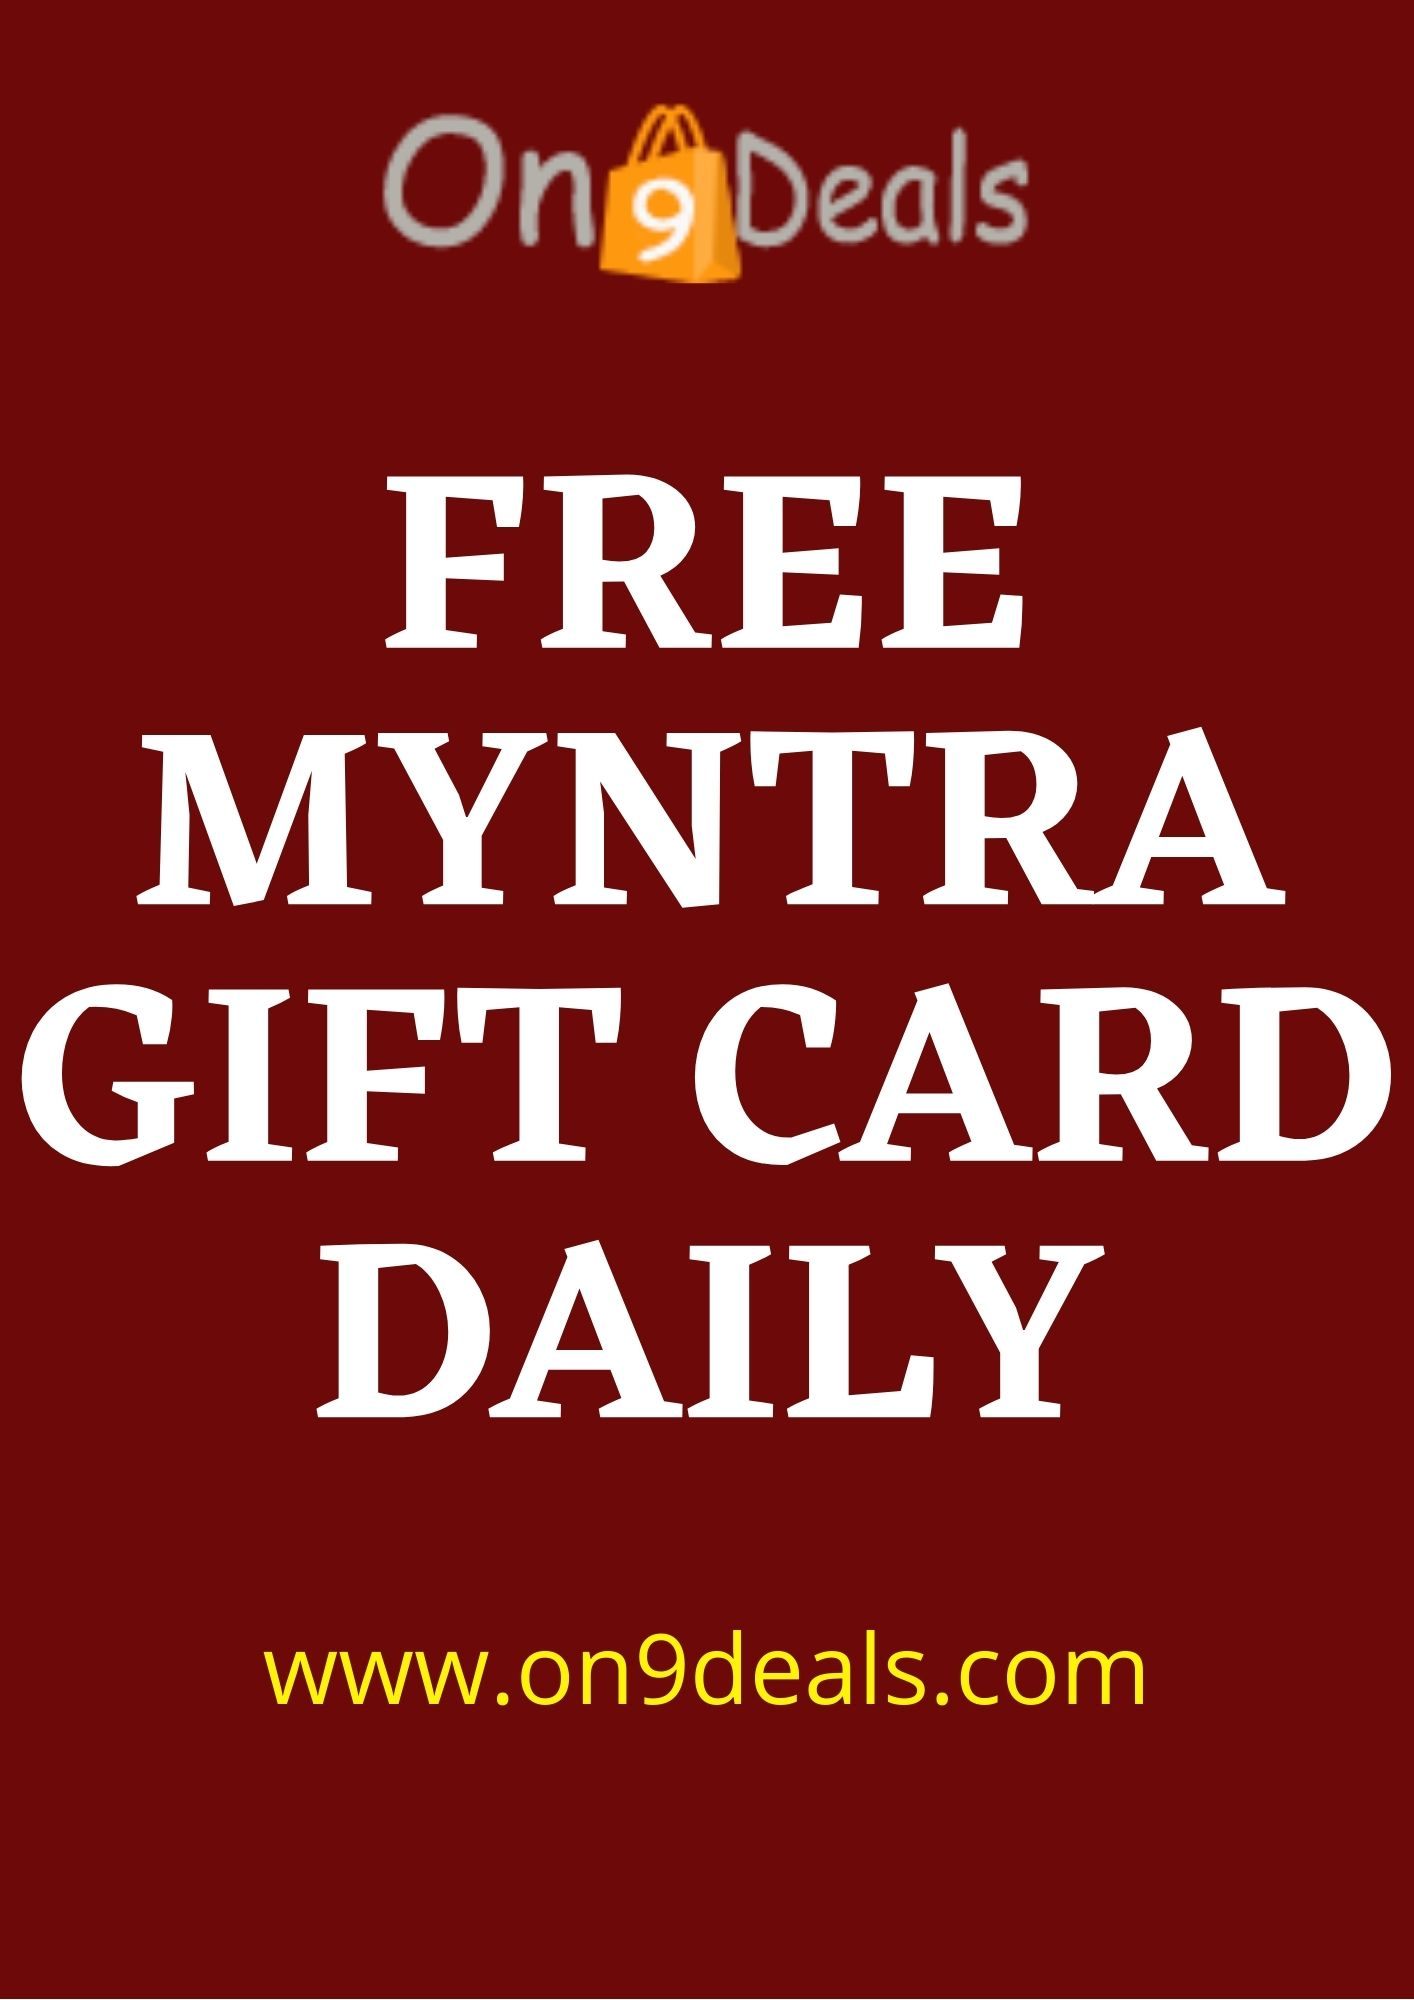 On9deals Giveaway 4th May - Free Myntra Gift Card Voucher Worth Rs.50